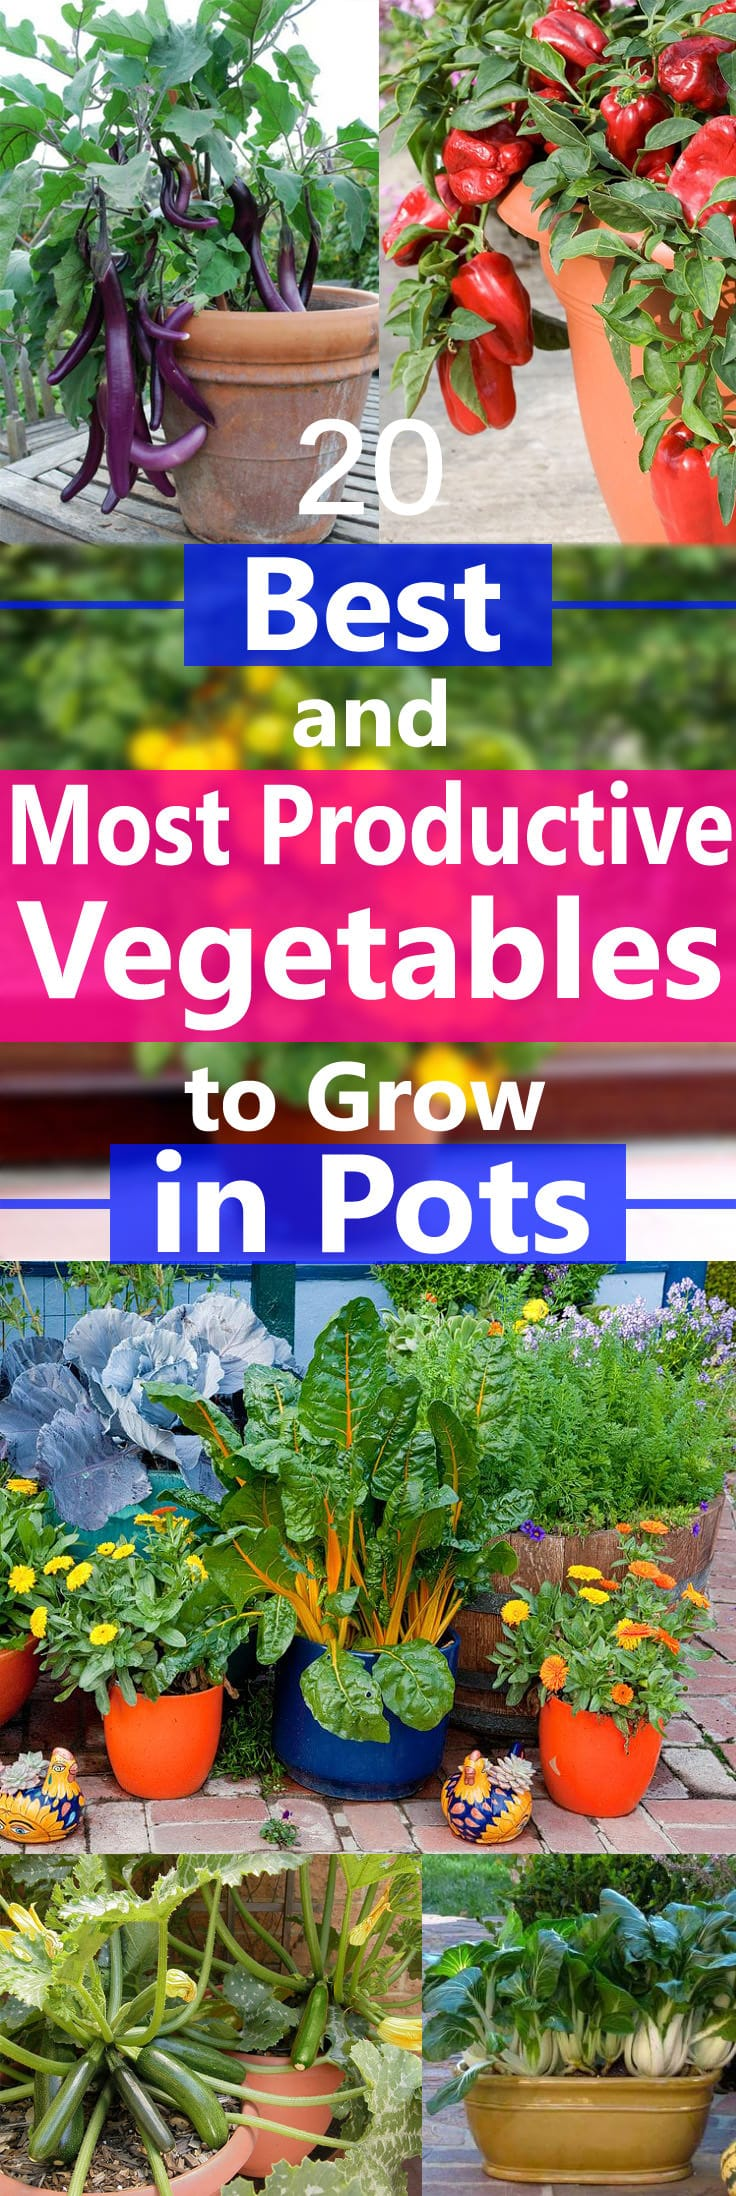 Delicieux Growing Vegetables In Containers Is Possible But There Are Some That Grow  Easily And Produce Heavily